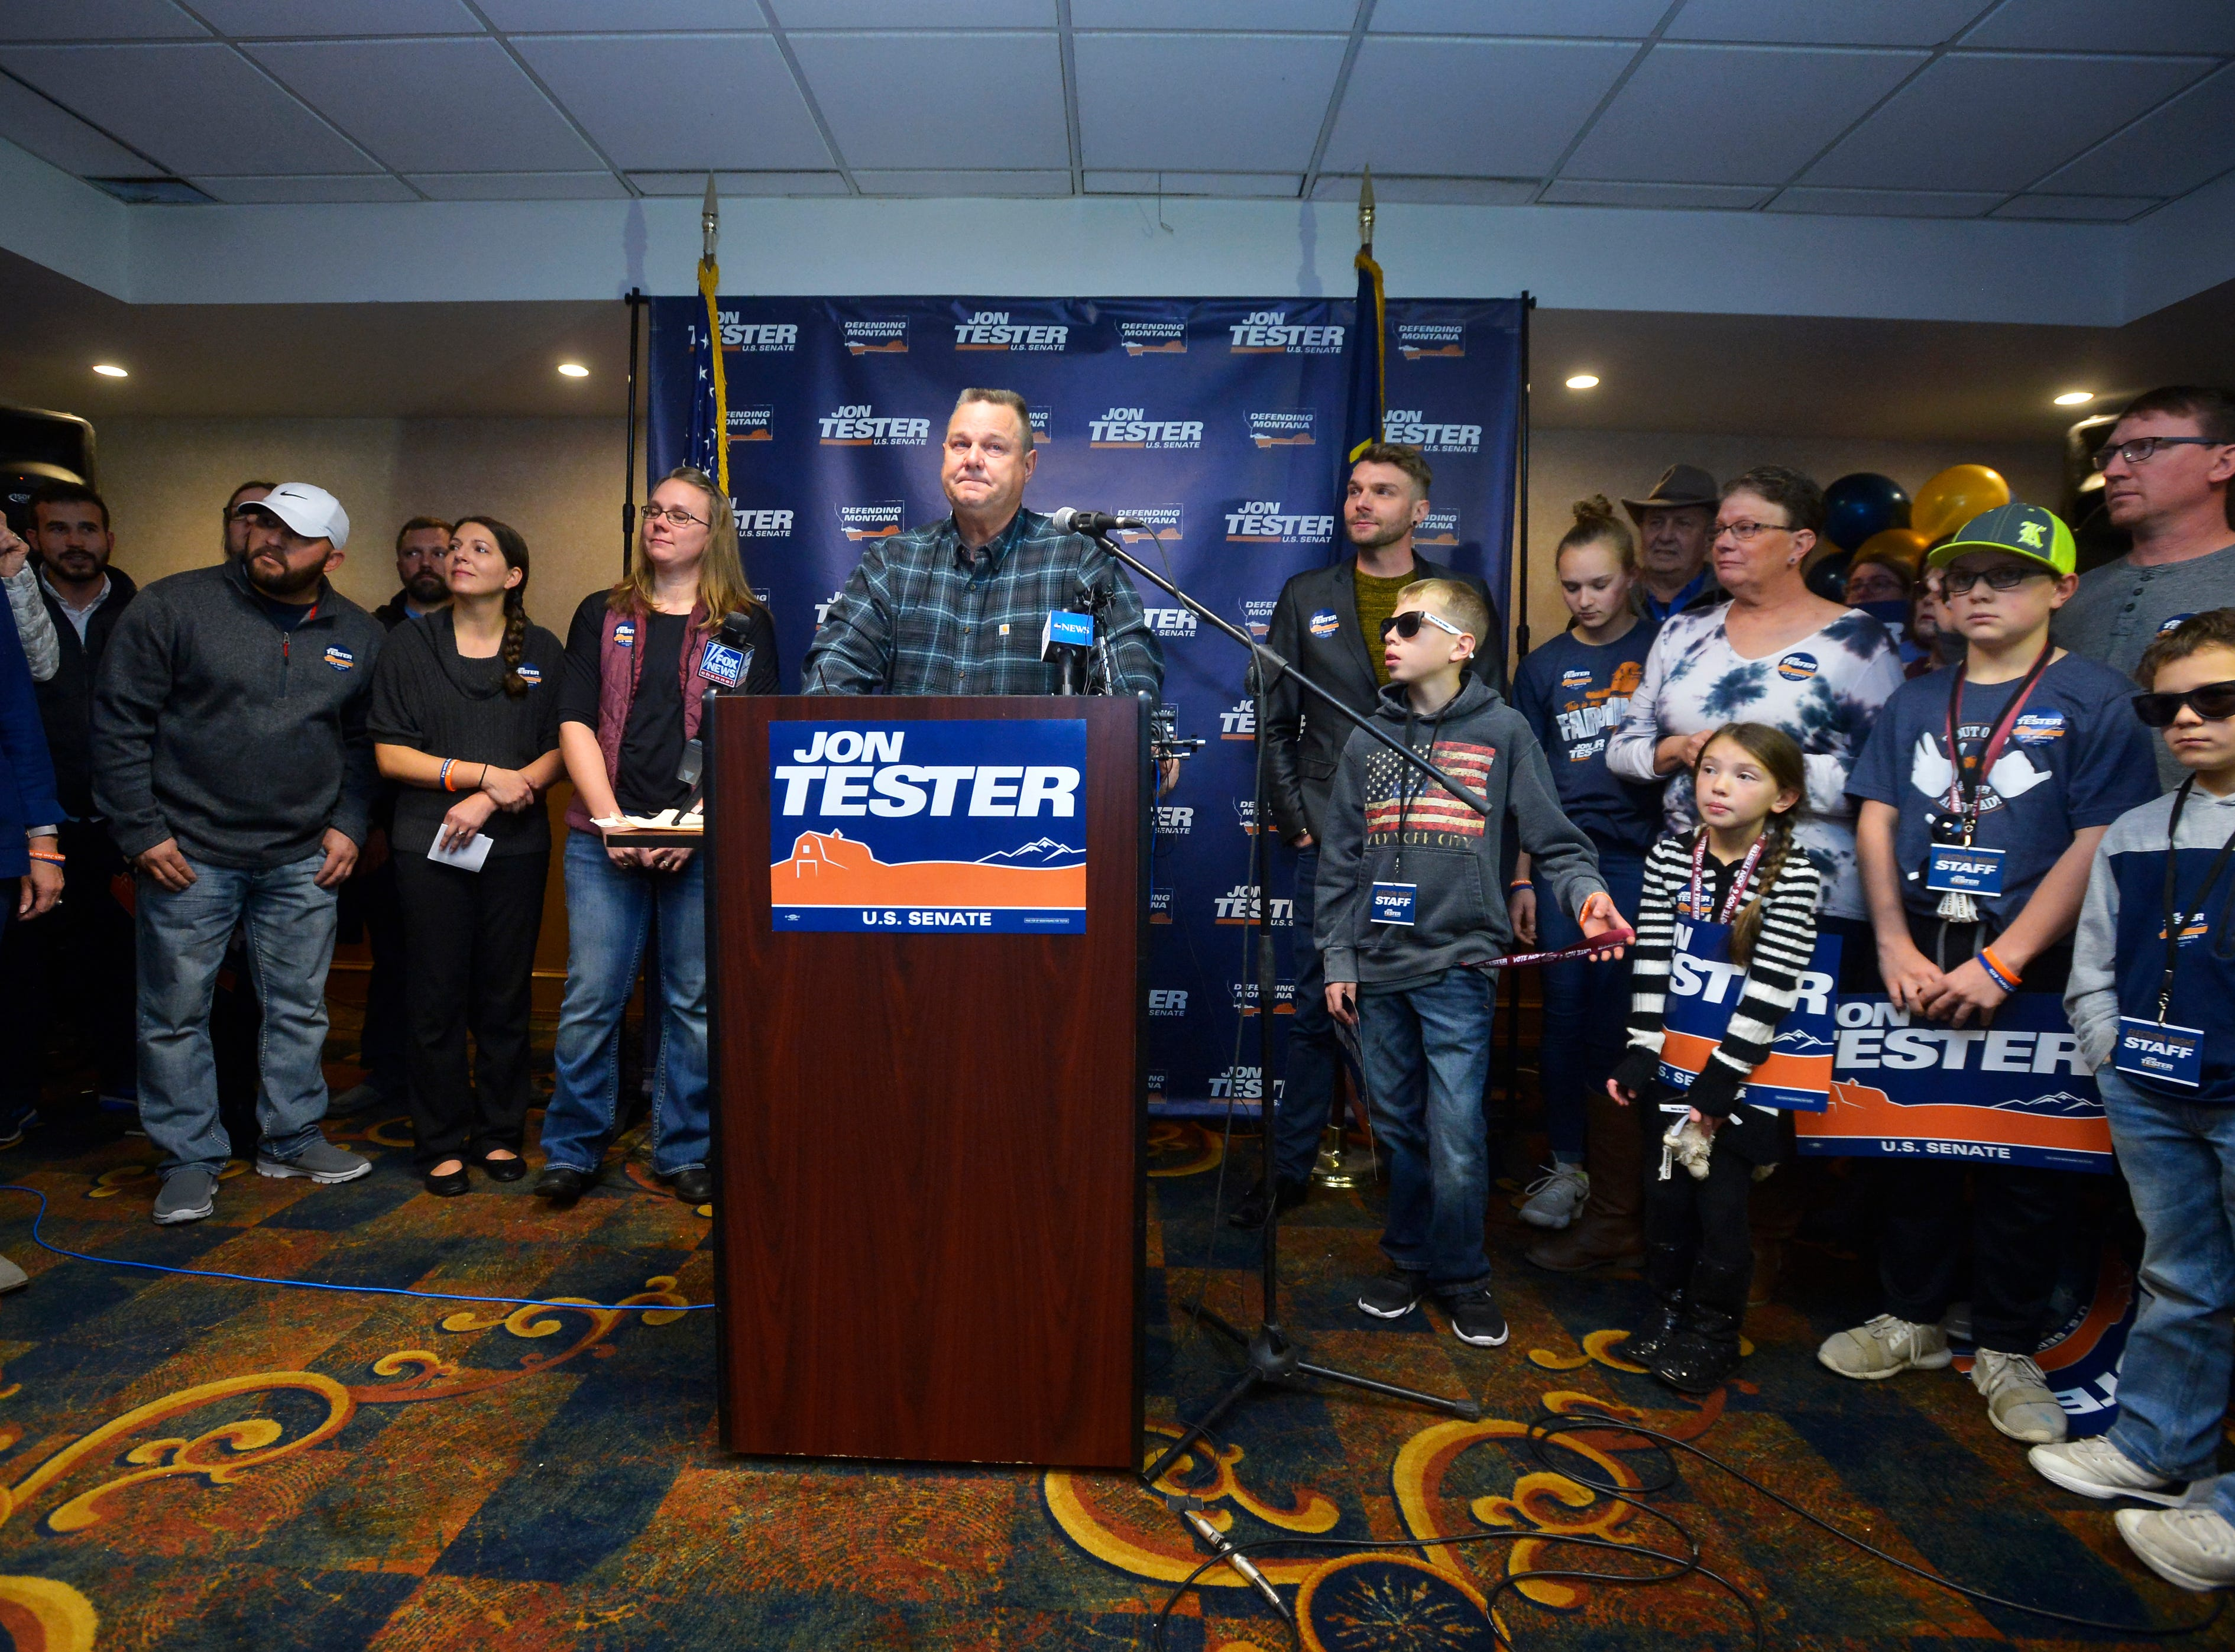 Senator Jon Tester thanks supporters during his victory speech at the Holiday Inn in Great Falls on Wednesday morning.